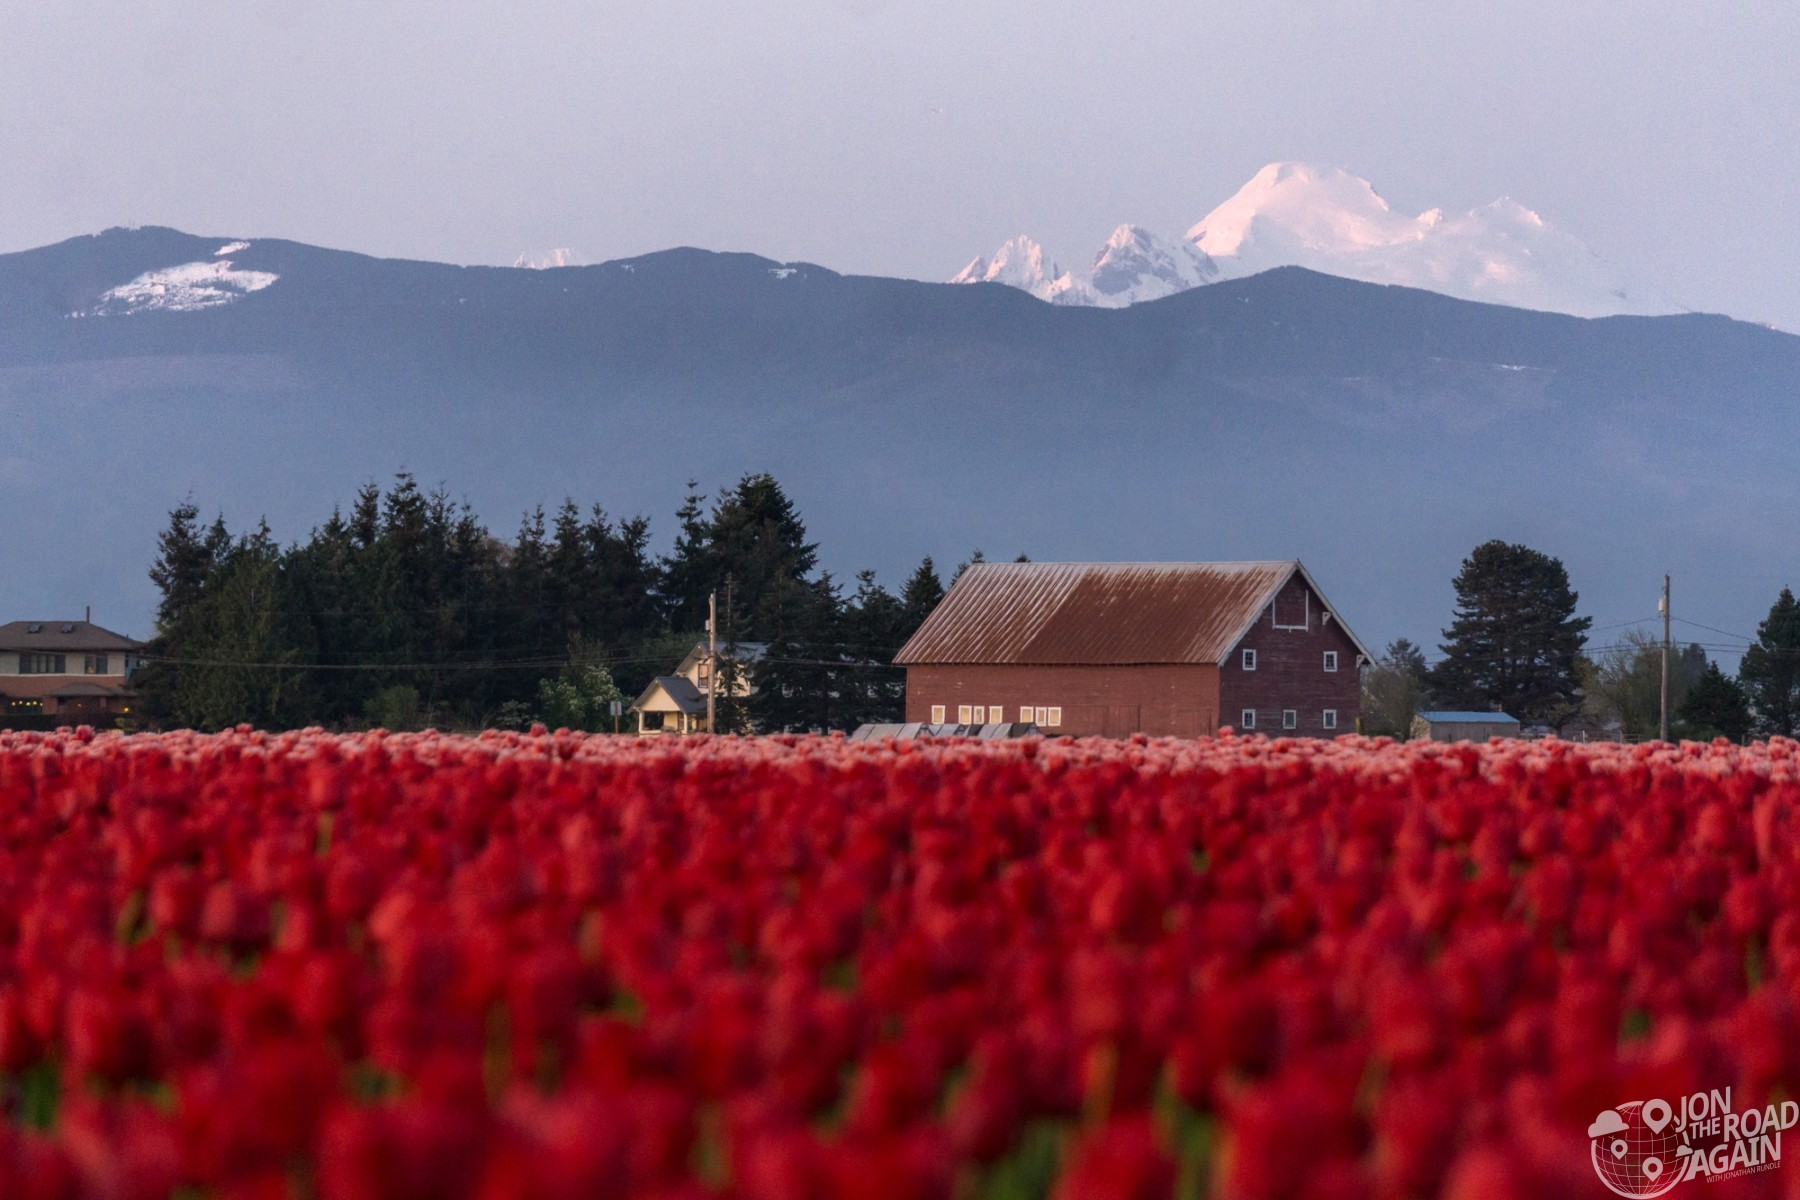 Mount Baker and Tulips